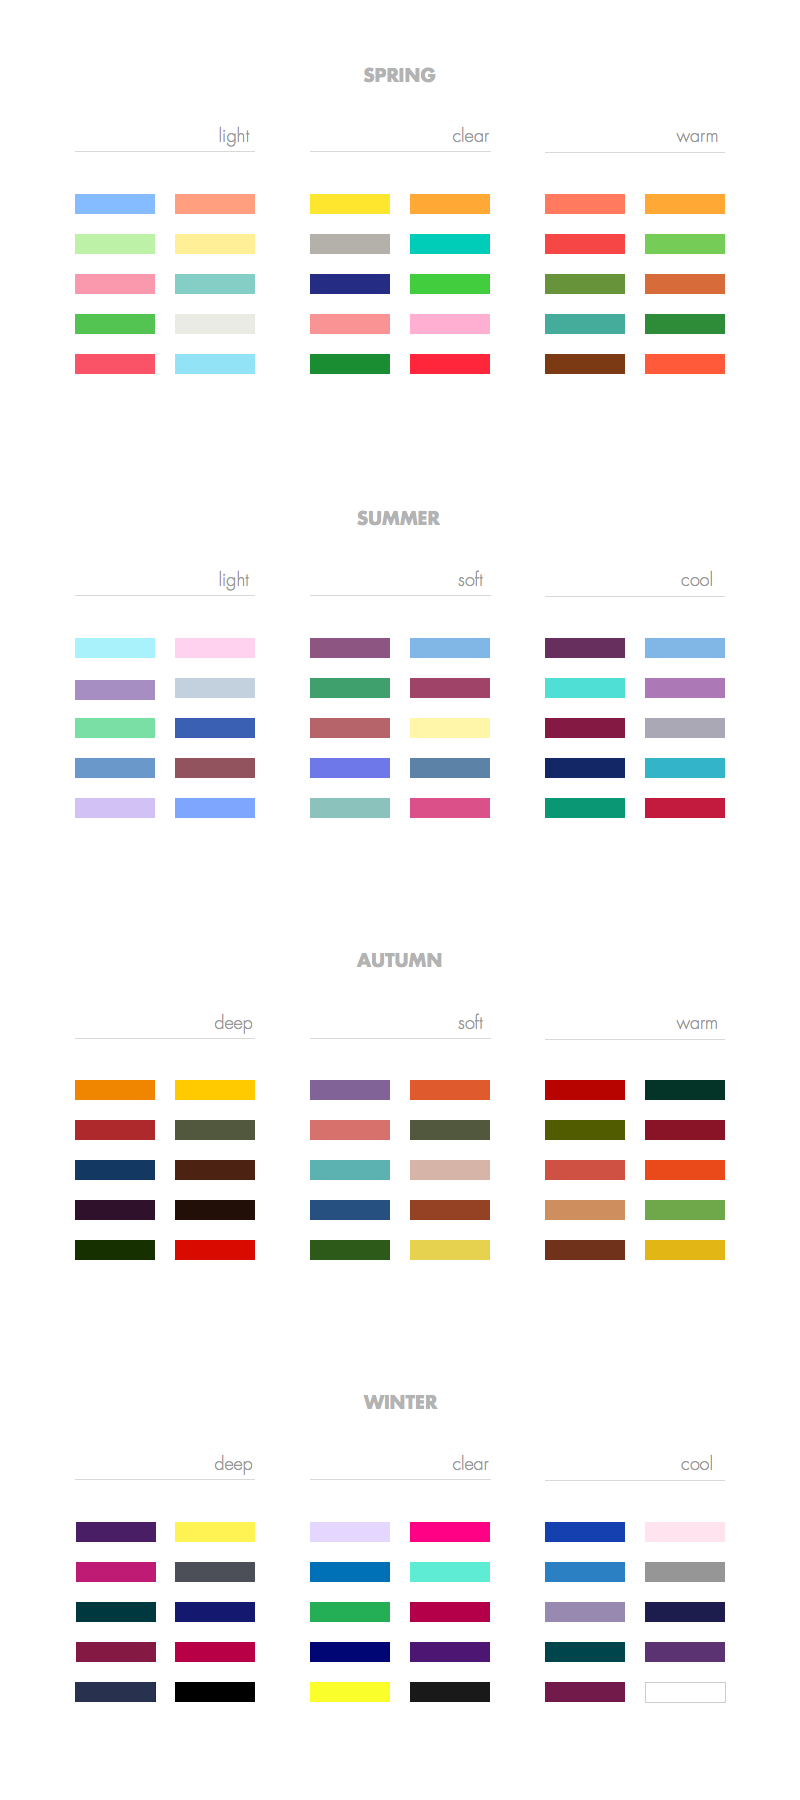 colour analysis part ii your colours wardrobes autumn and